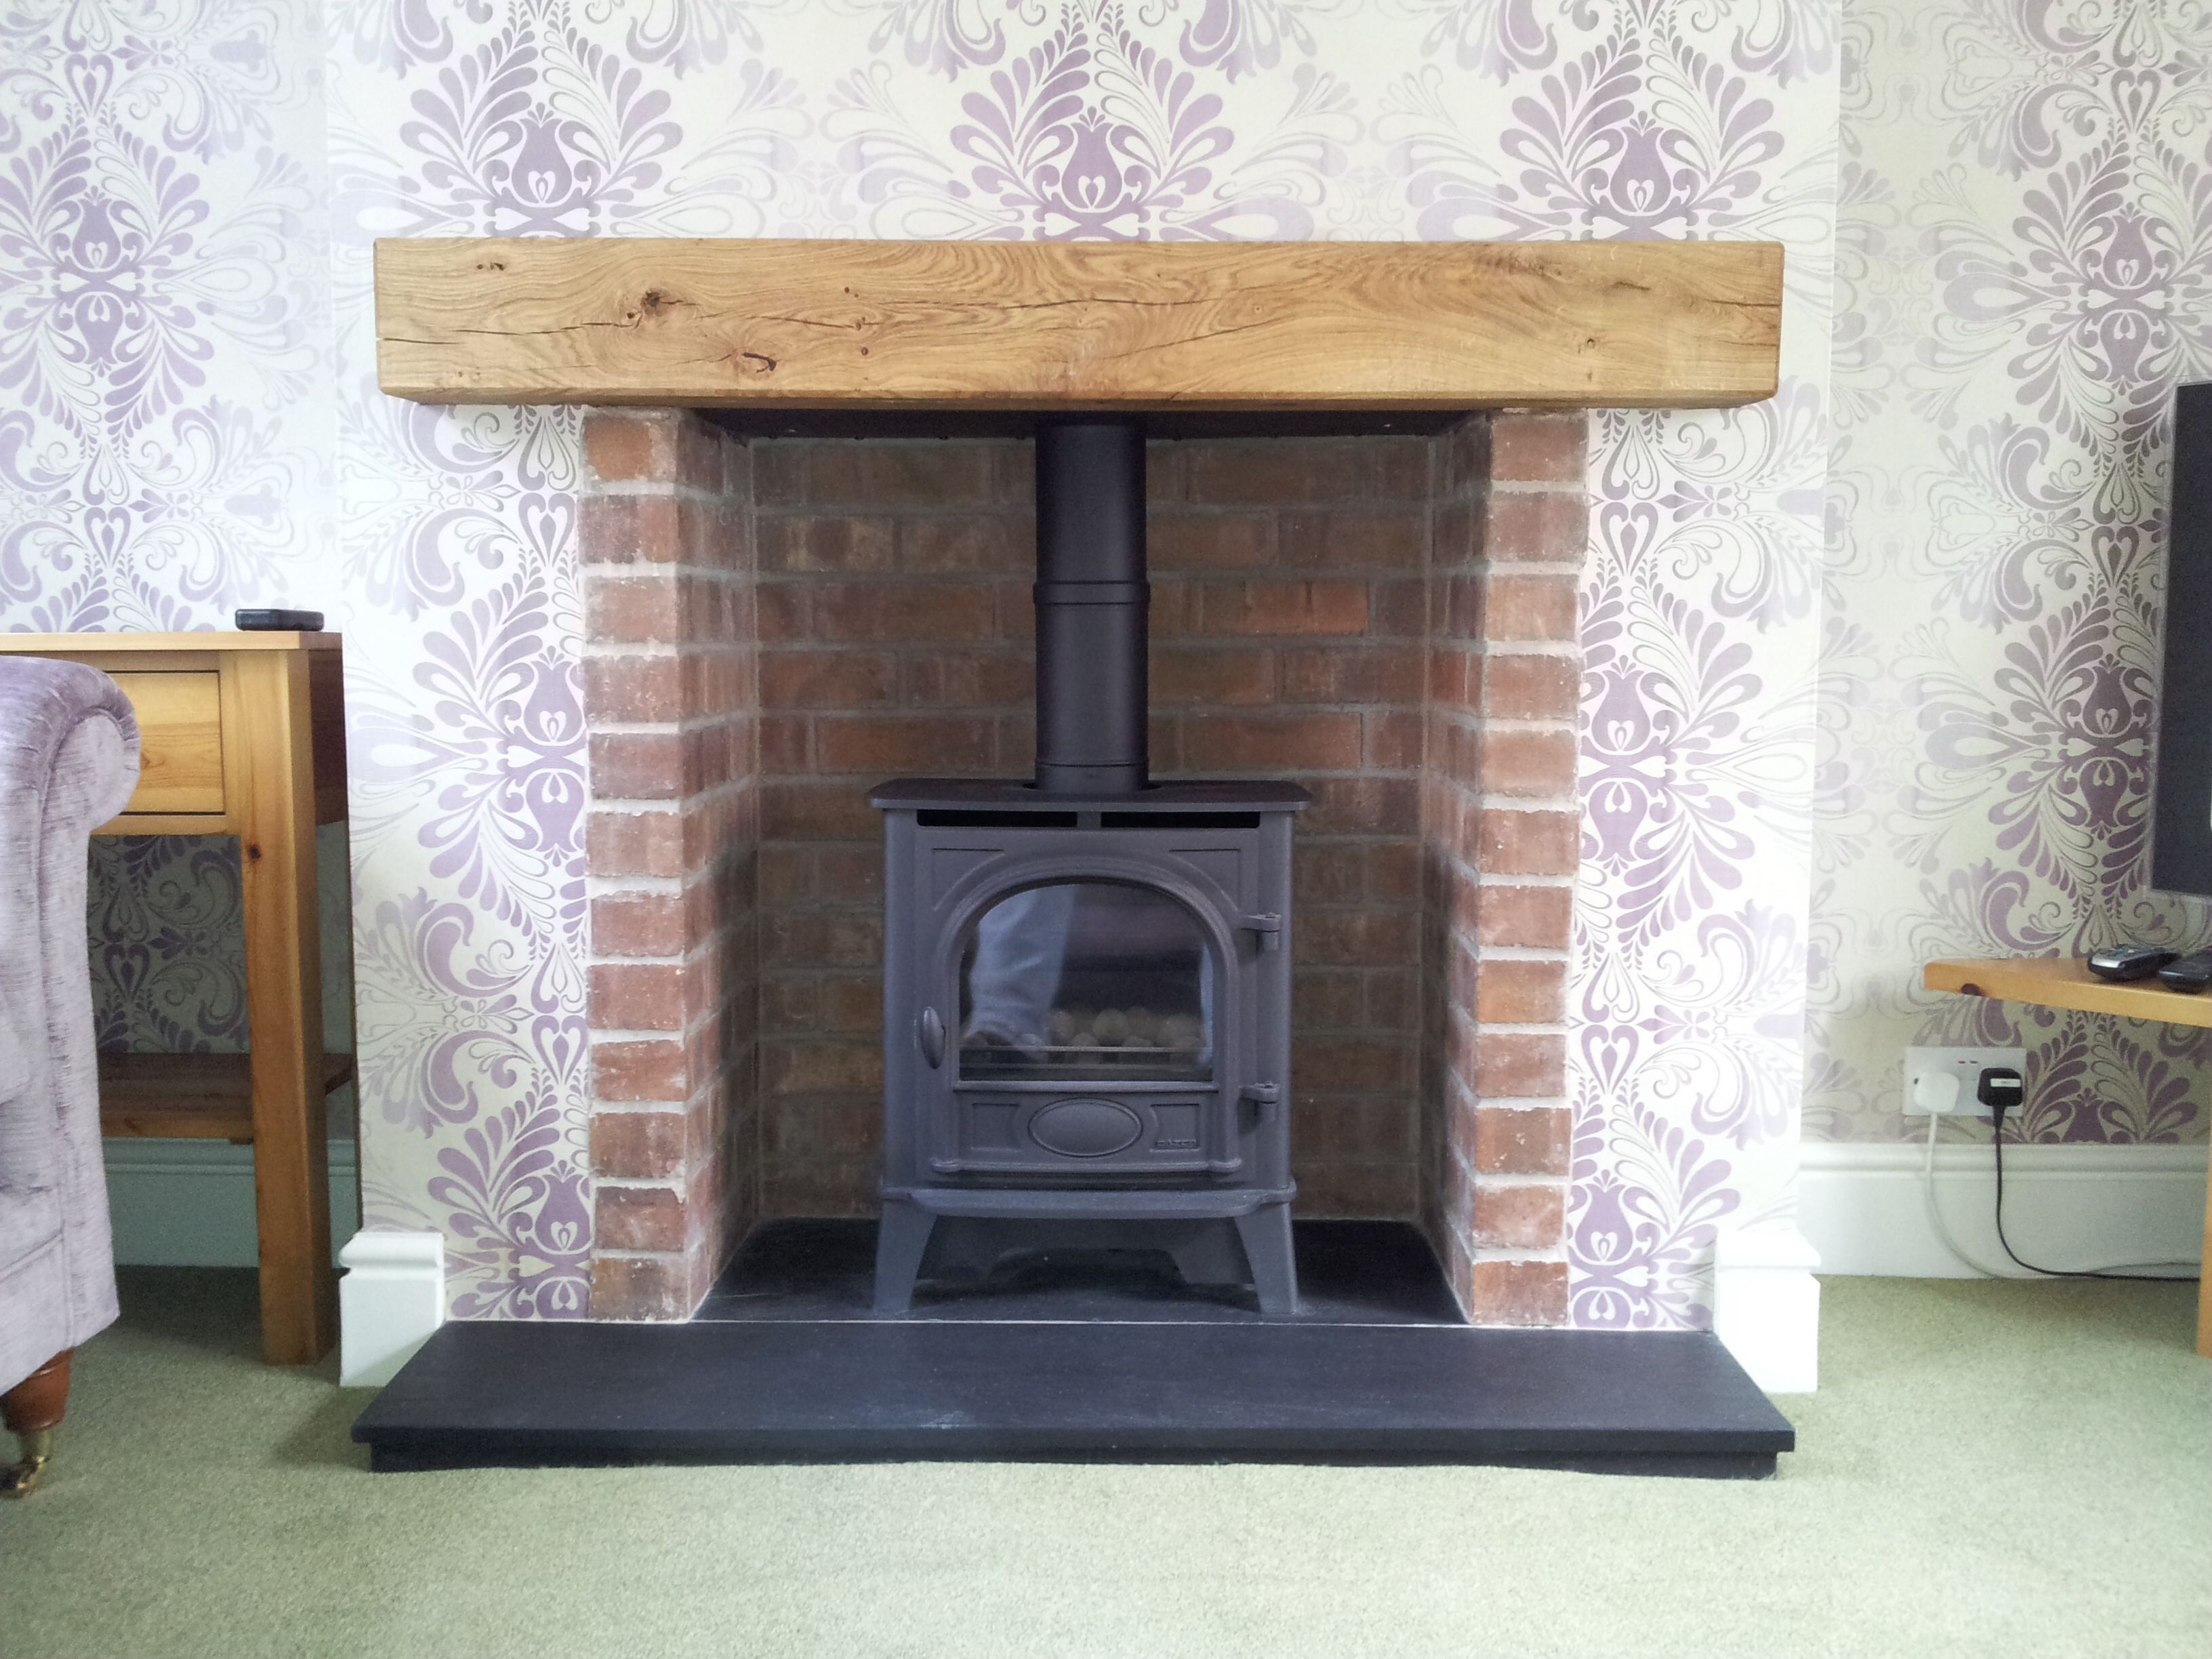 This Is A Stovax Stockton 5 Stove Shown Into A Brick Slip Chamber